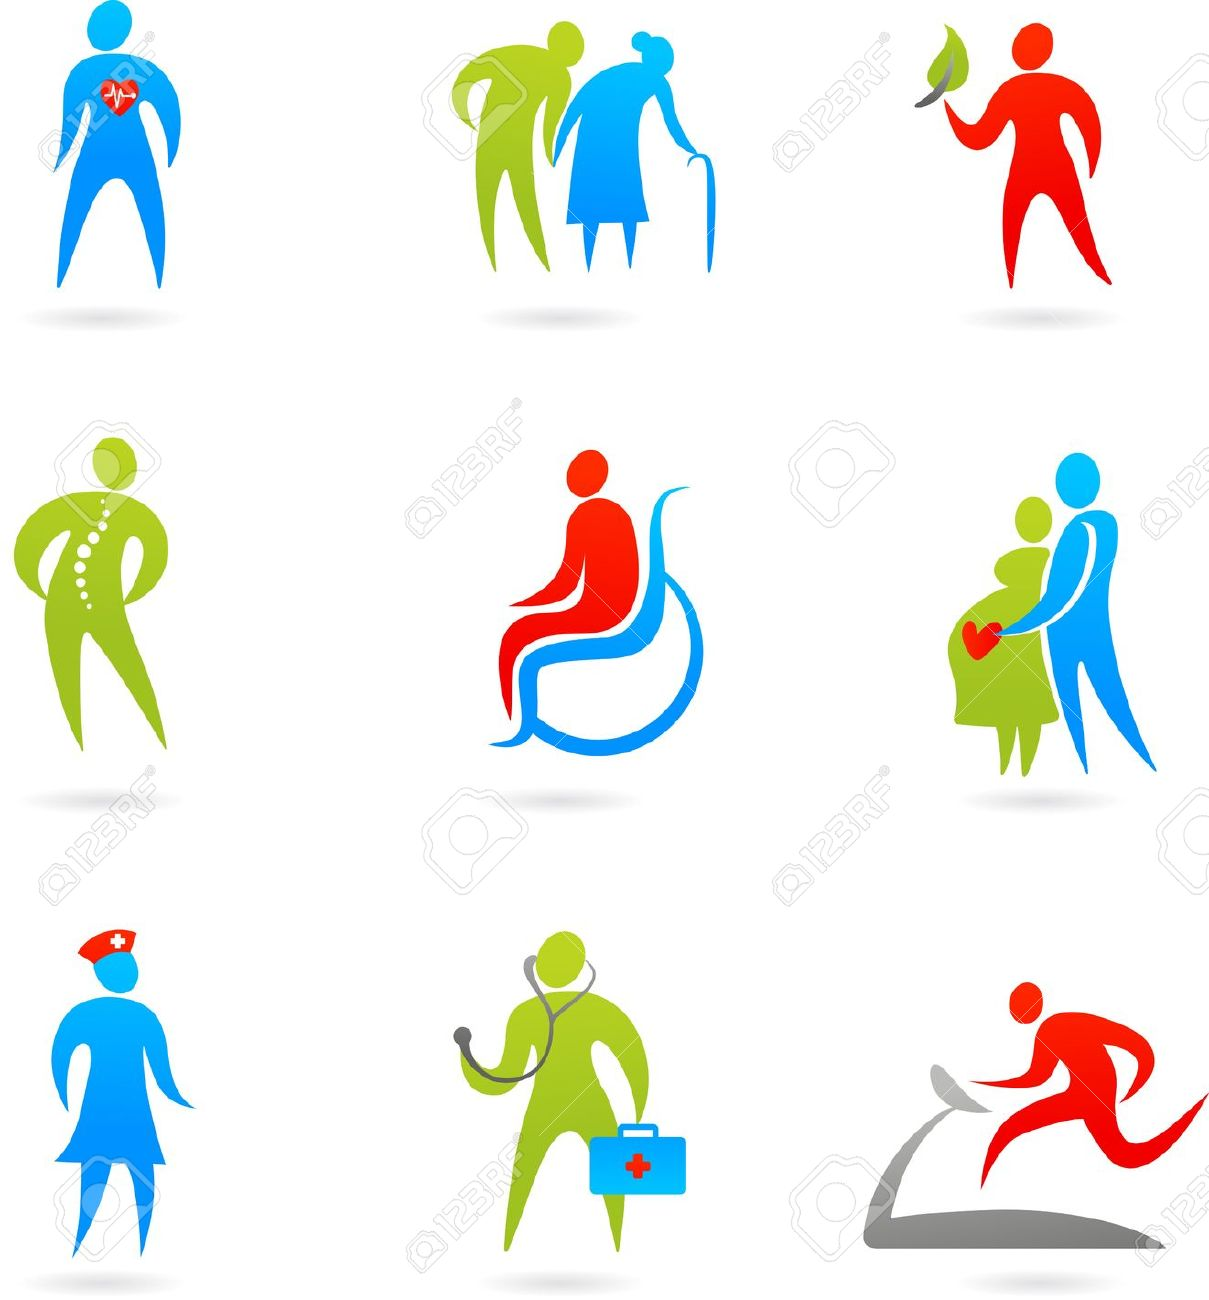 Free clipart images of caring for the elderly.